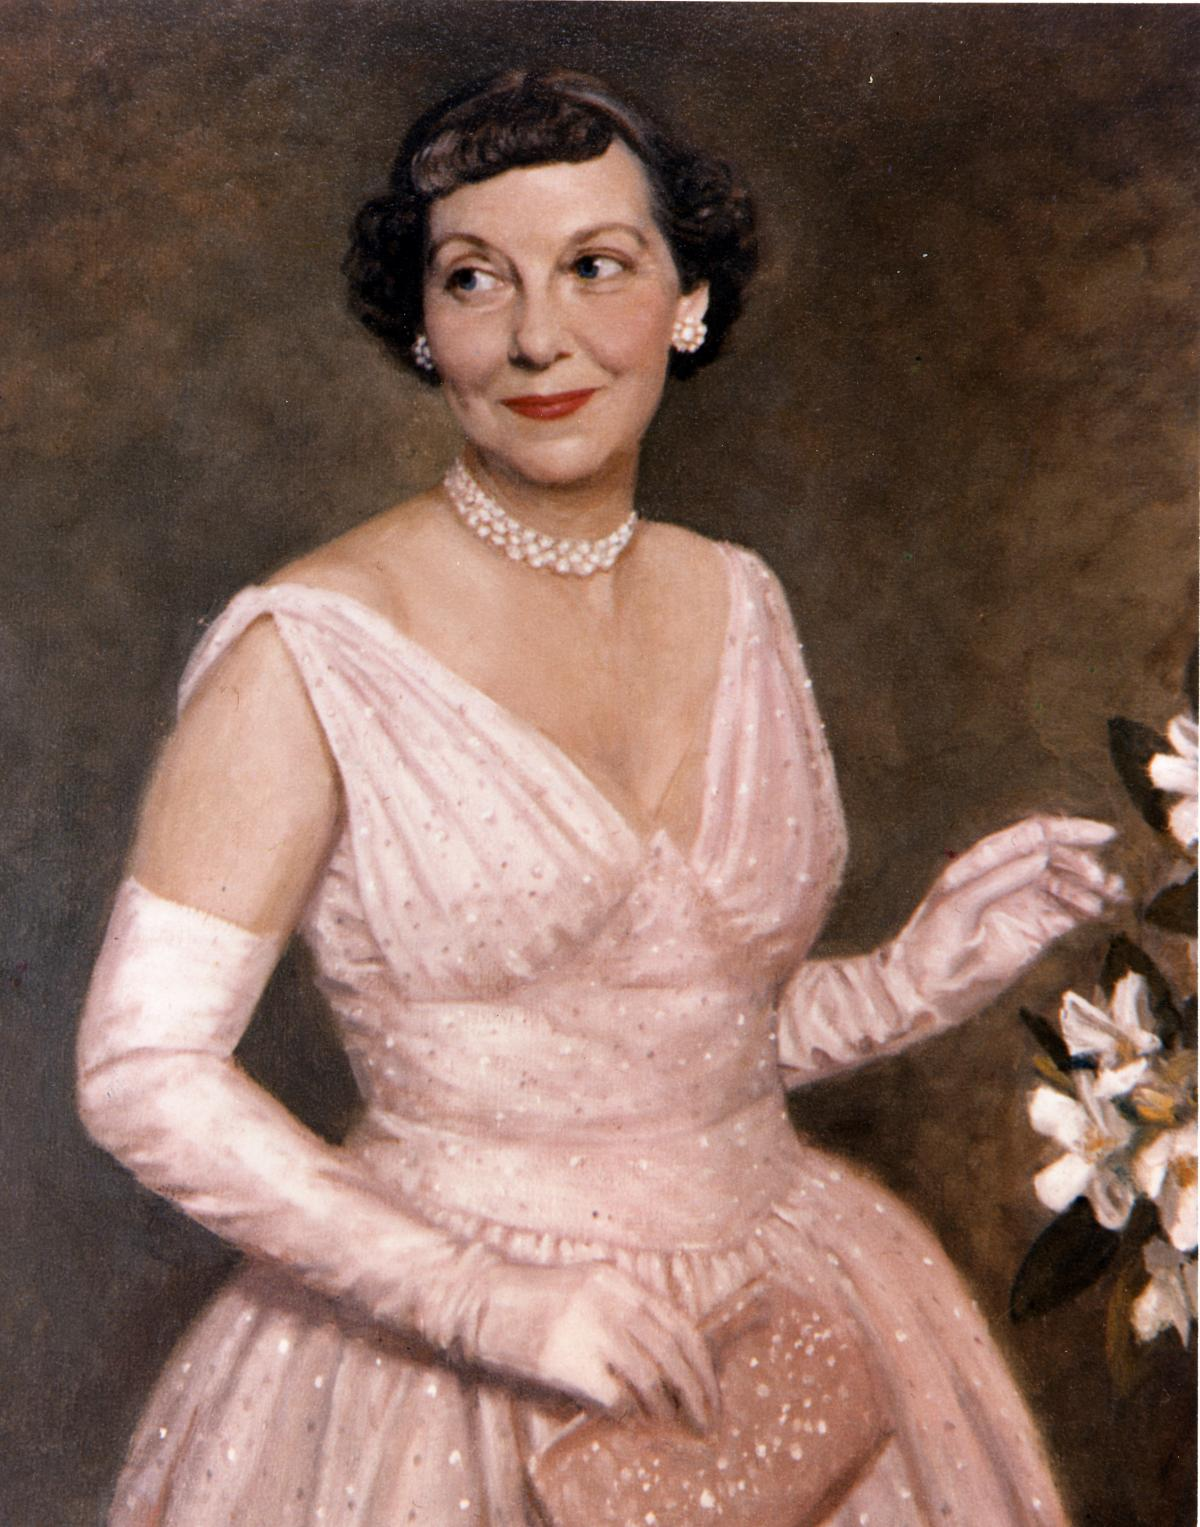 Thomas Stephens portrait of Mamie Eisenhower wearing her 1953 inaugural gown. [62-91]